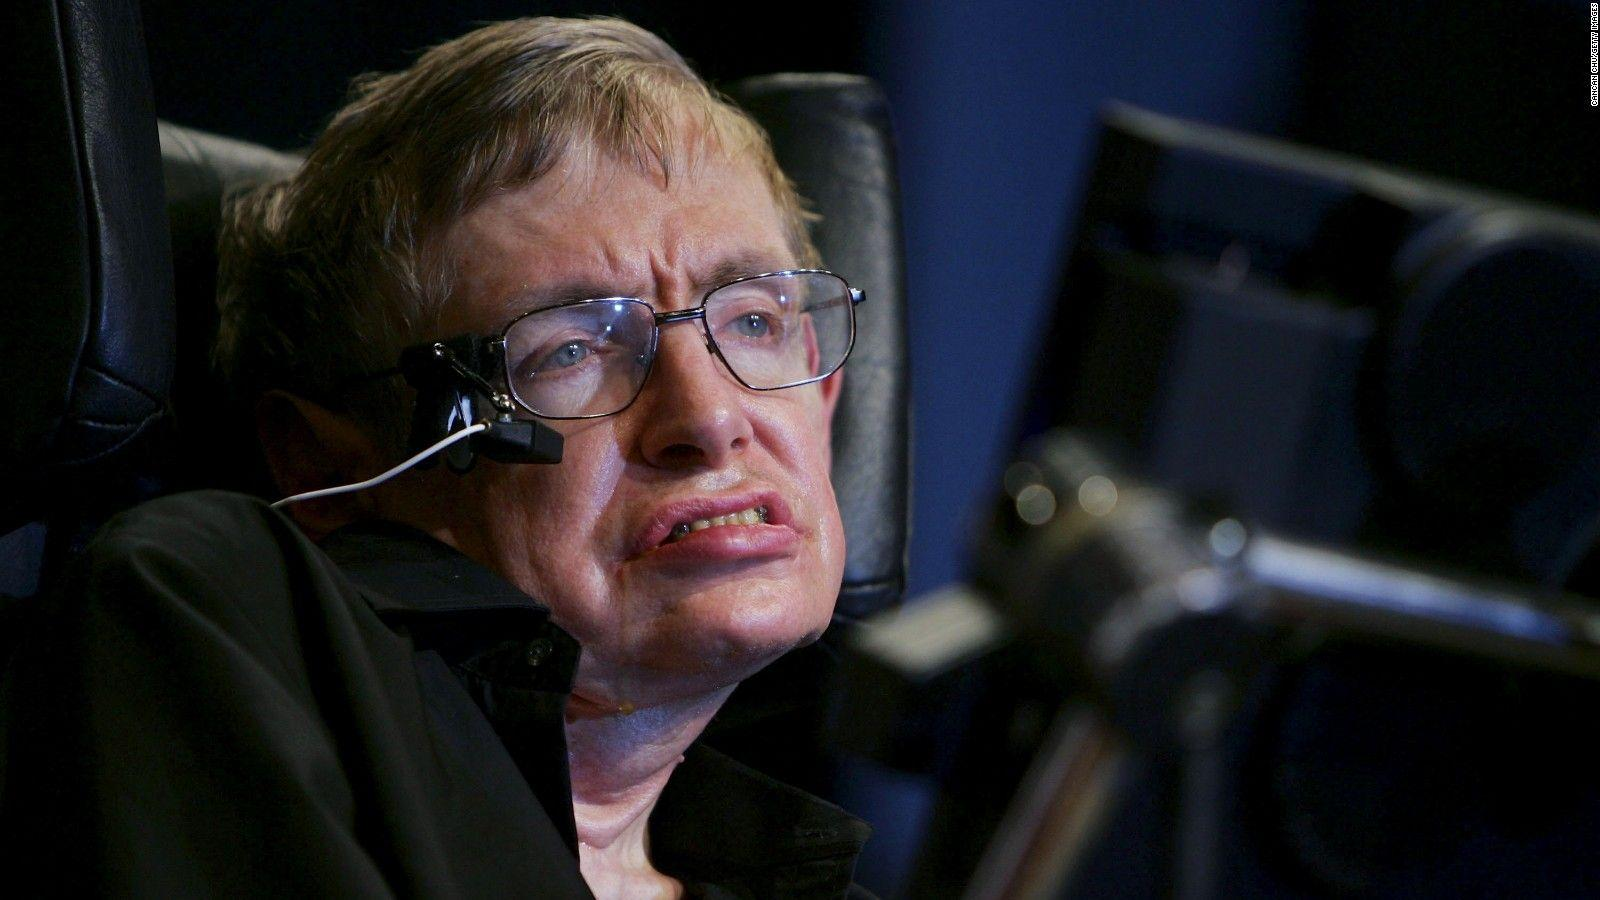 Stephen Hawking's giving us all about 1,000 years to find a new